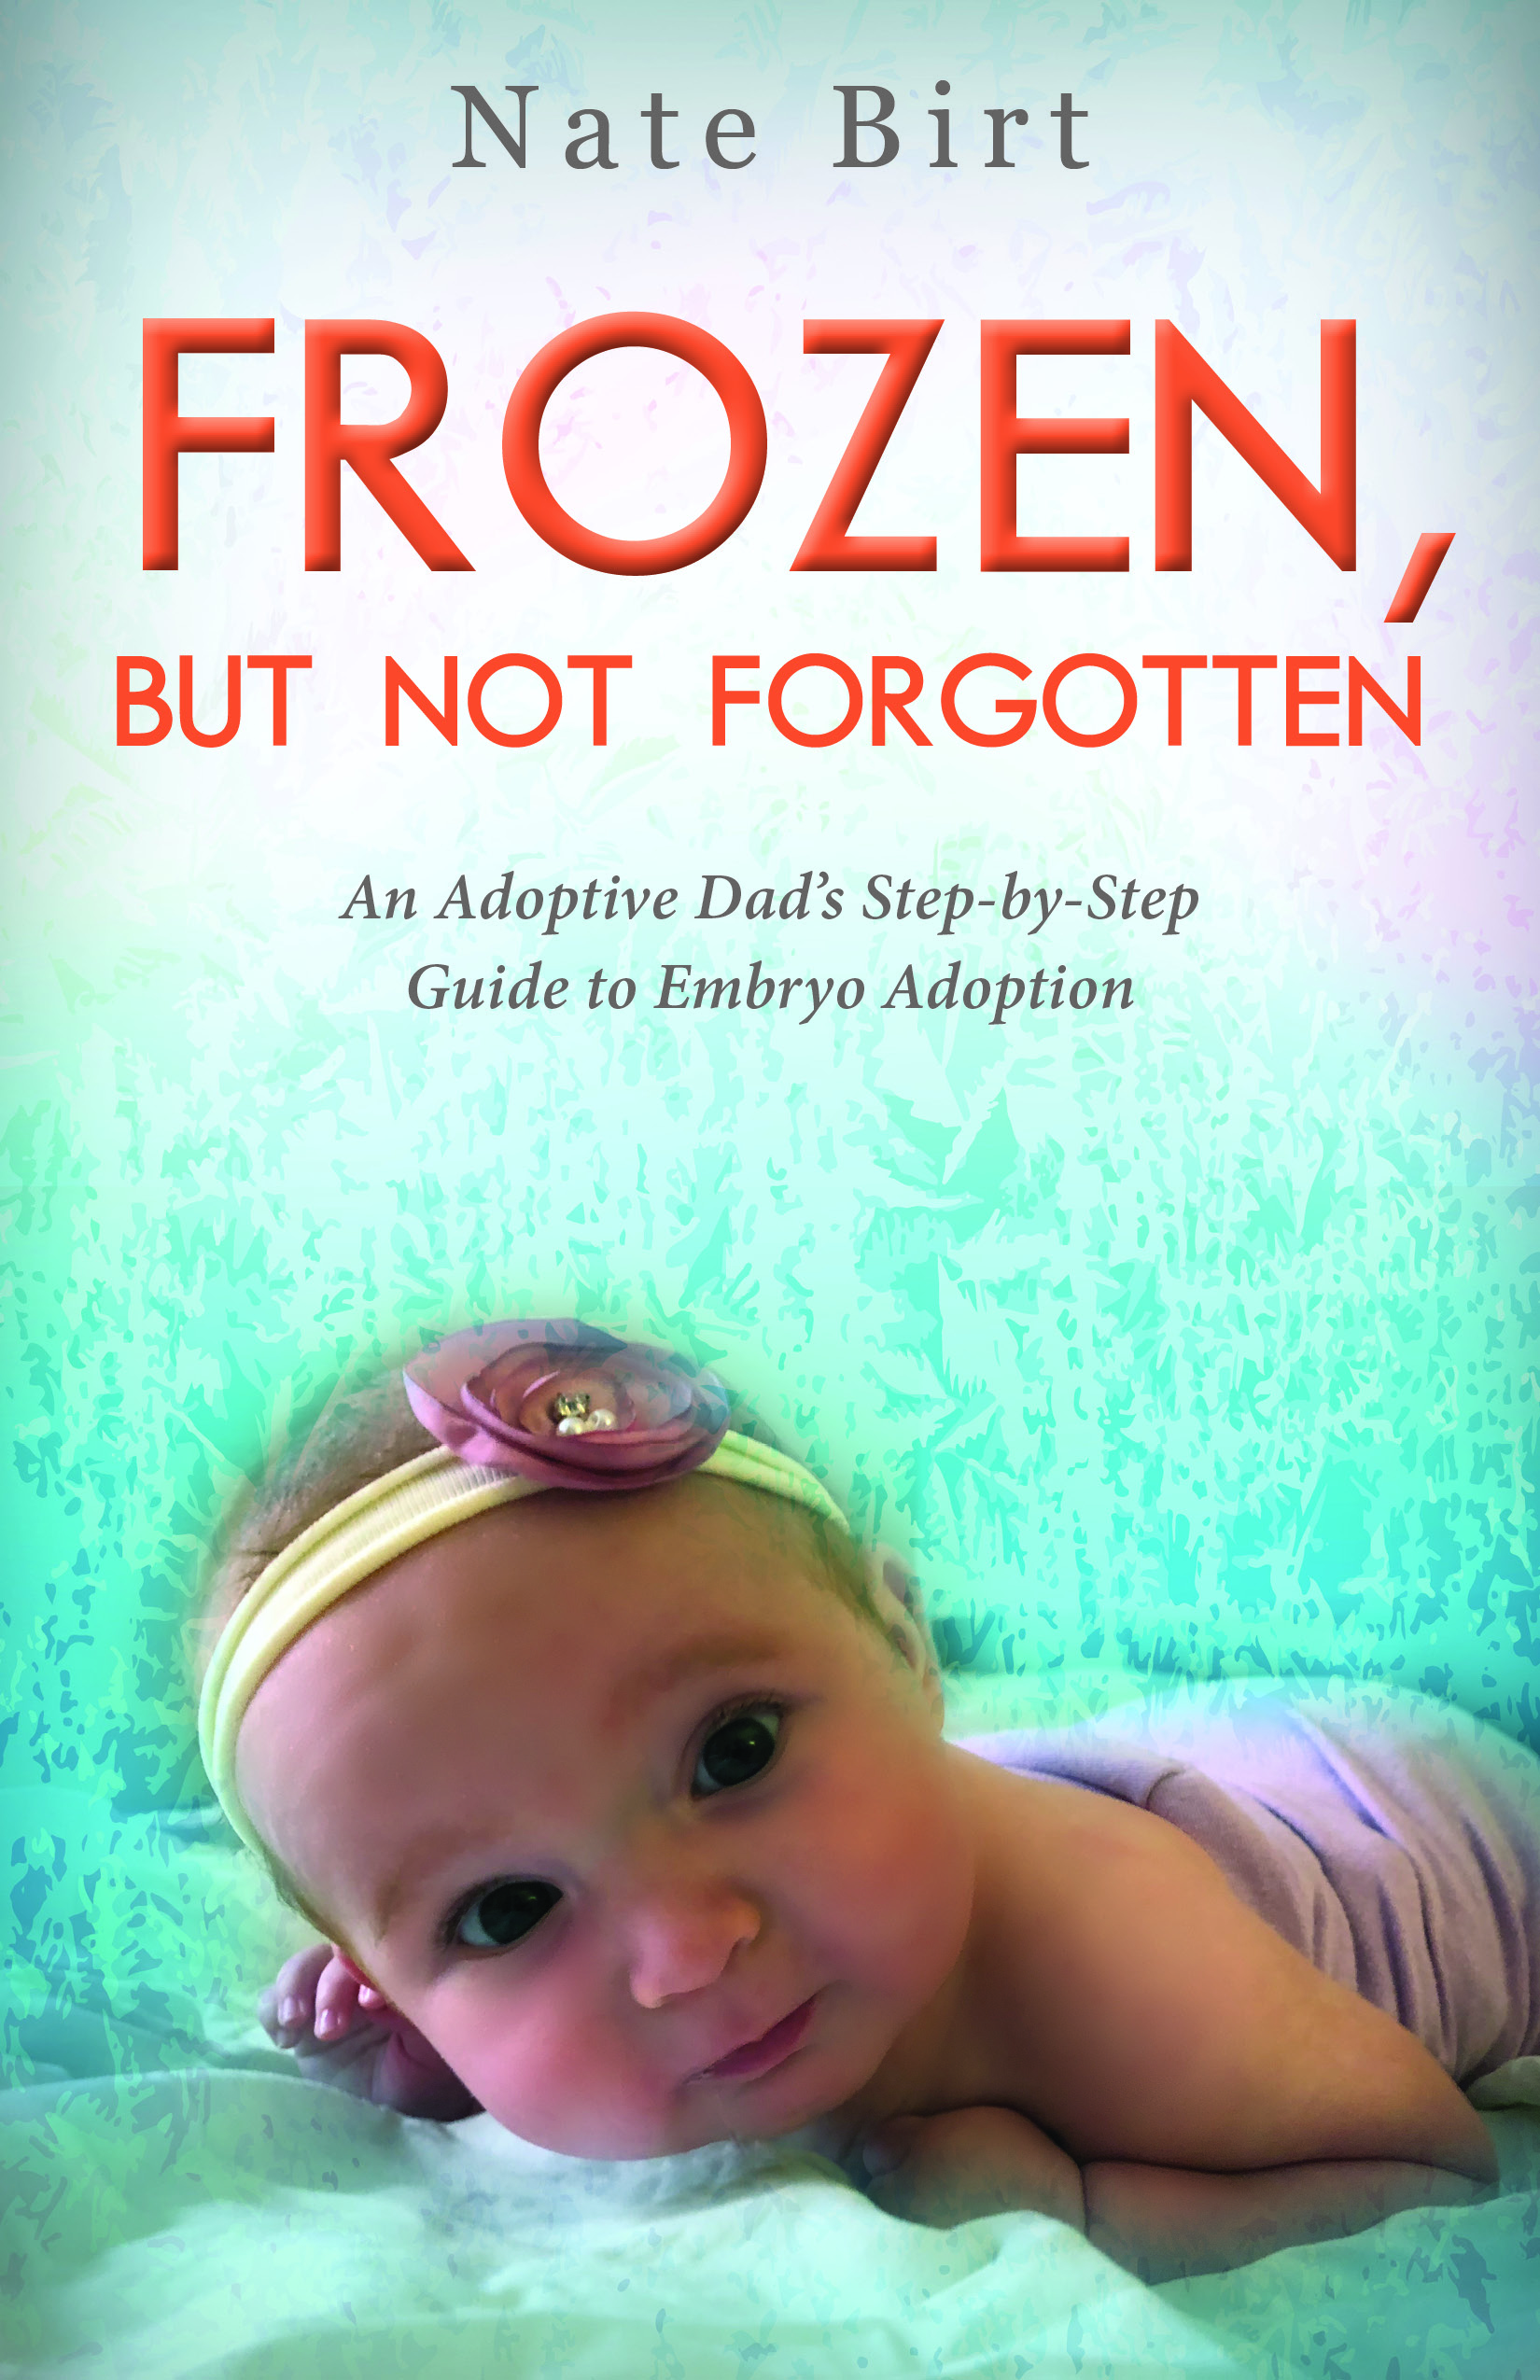 Cover image for the book Frozen, But Not Forgotten, written by Nate Birt. This embryo adoption guidebook, written by an adoptive Christian dad, helps couples interested in having a baby whether they face infertility or are considering this unique form of adoption with a goal of pregnancy to build their family.